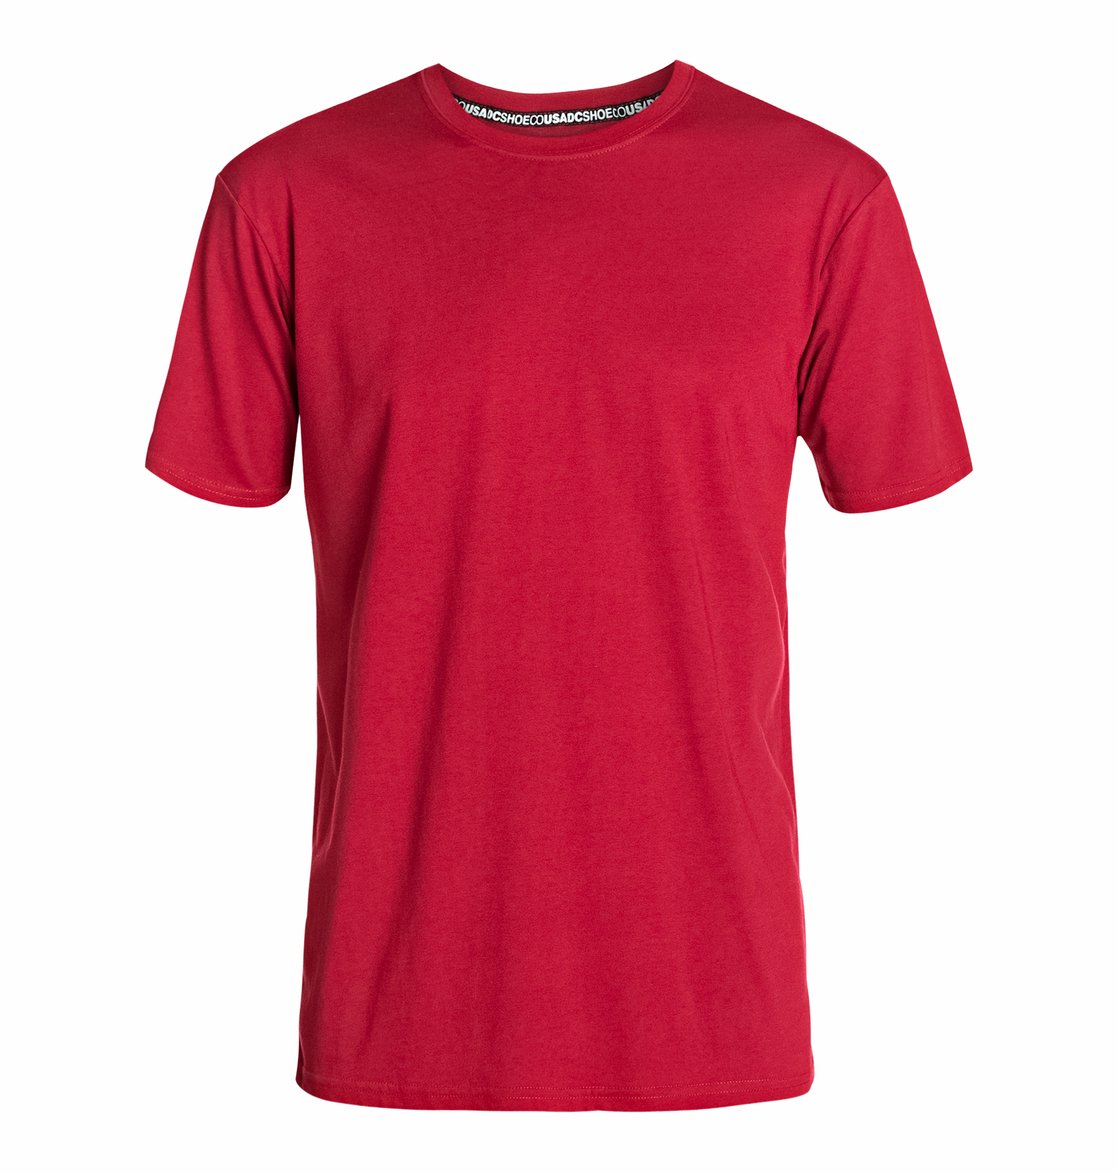 Basic Crew Tee - Dcshoes������� �������� Basic Crew Tee �� DC Shoes � ������� �� ��������� ����� 2015. ��������������: �������� � ��������, ������� ��������� � ������� ����� � ���� ������ � �������� DCSHOECOUSA, ������� ��� � ������� ���������� �������.<br>